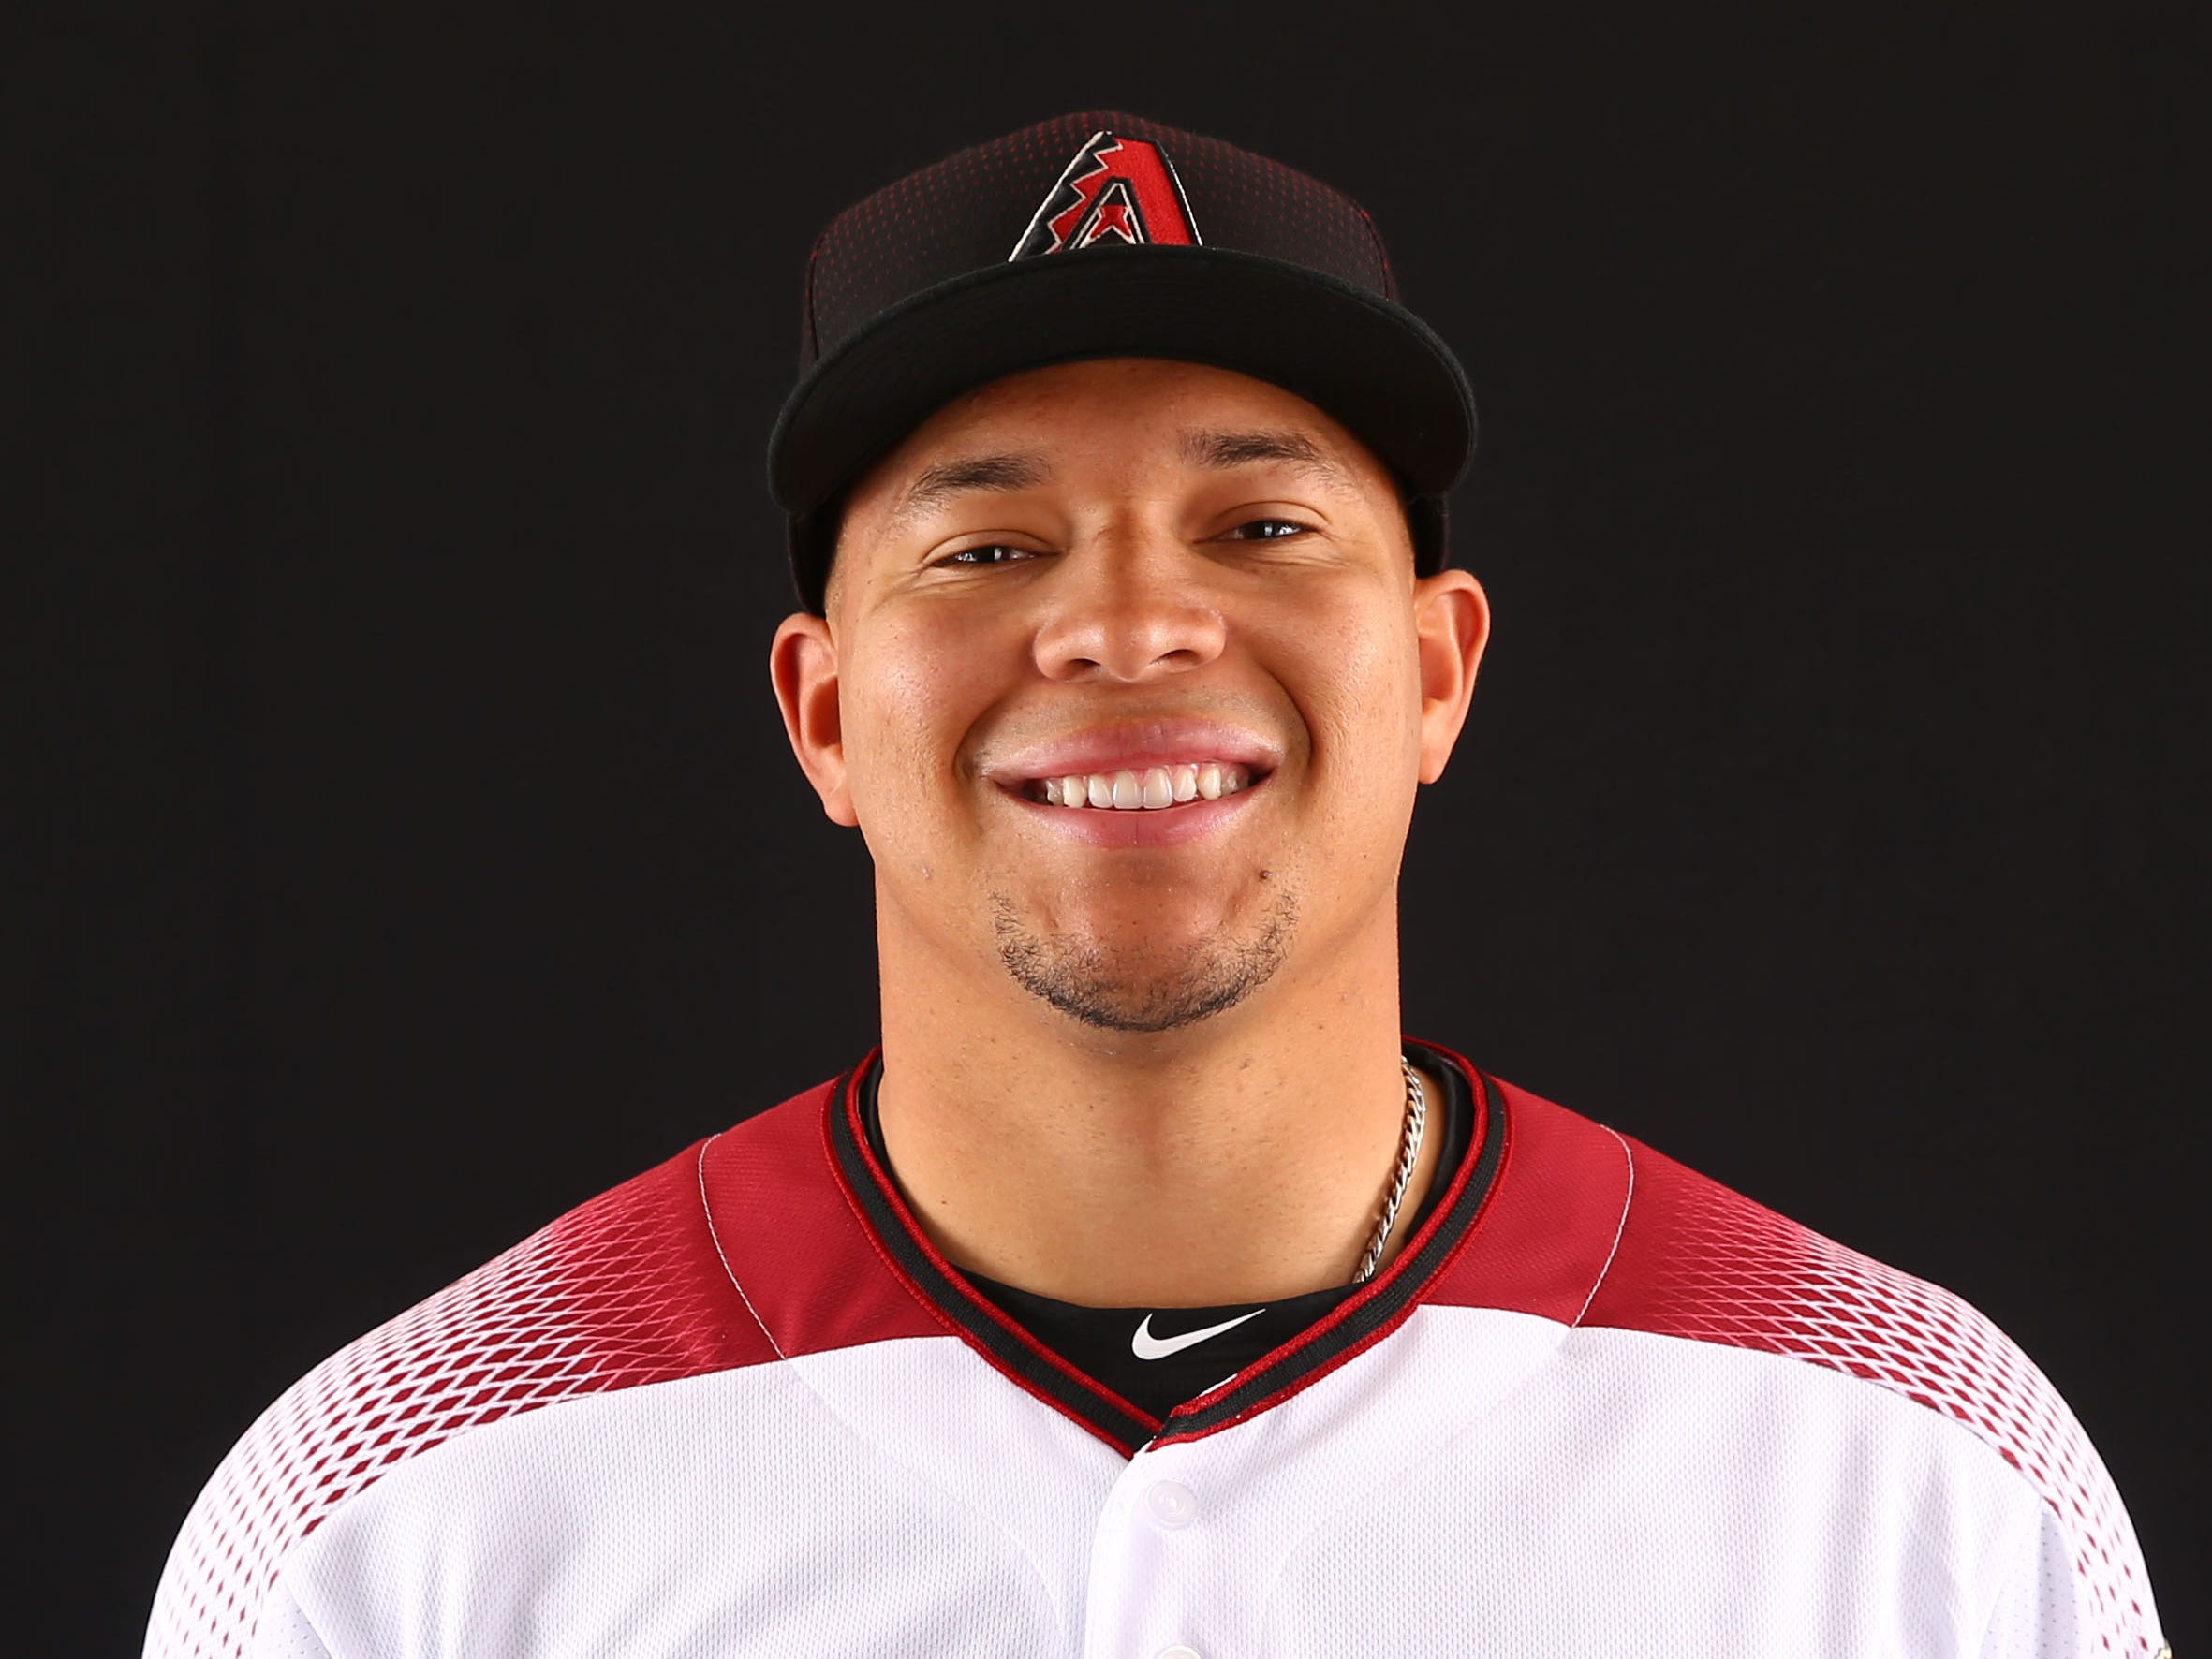 Taijuan Walker of the Arizona Diamondbacks poses for a photo during the annual Spring Training Photo Day on Feb. 20 at Salt River Fields in Scottsdale, Ariz.